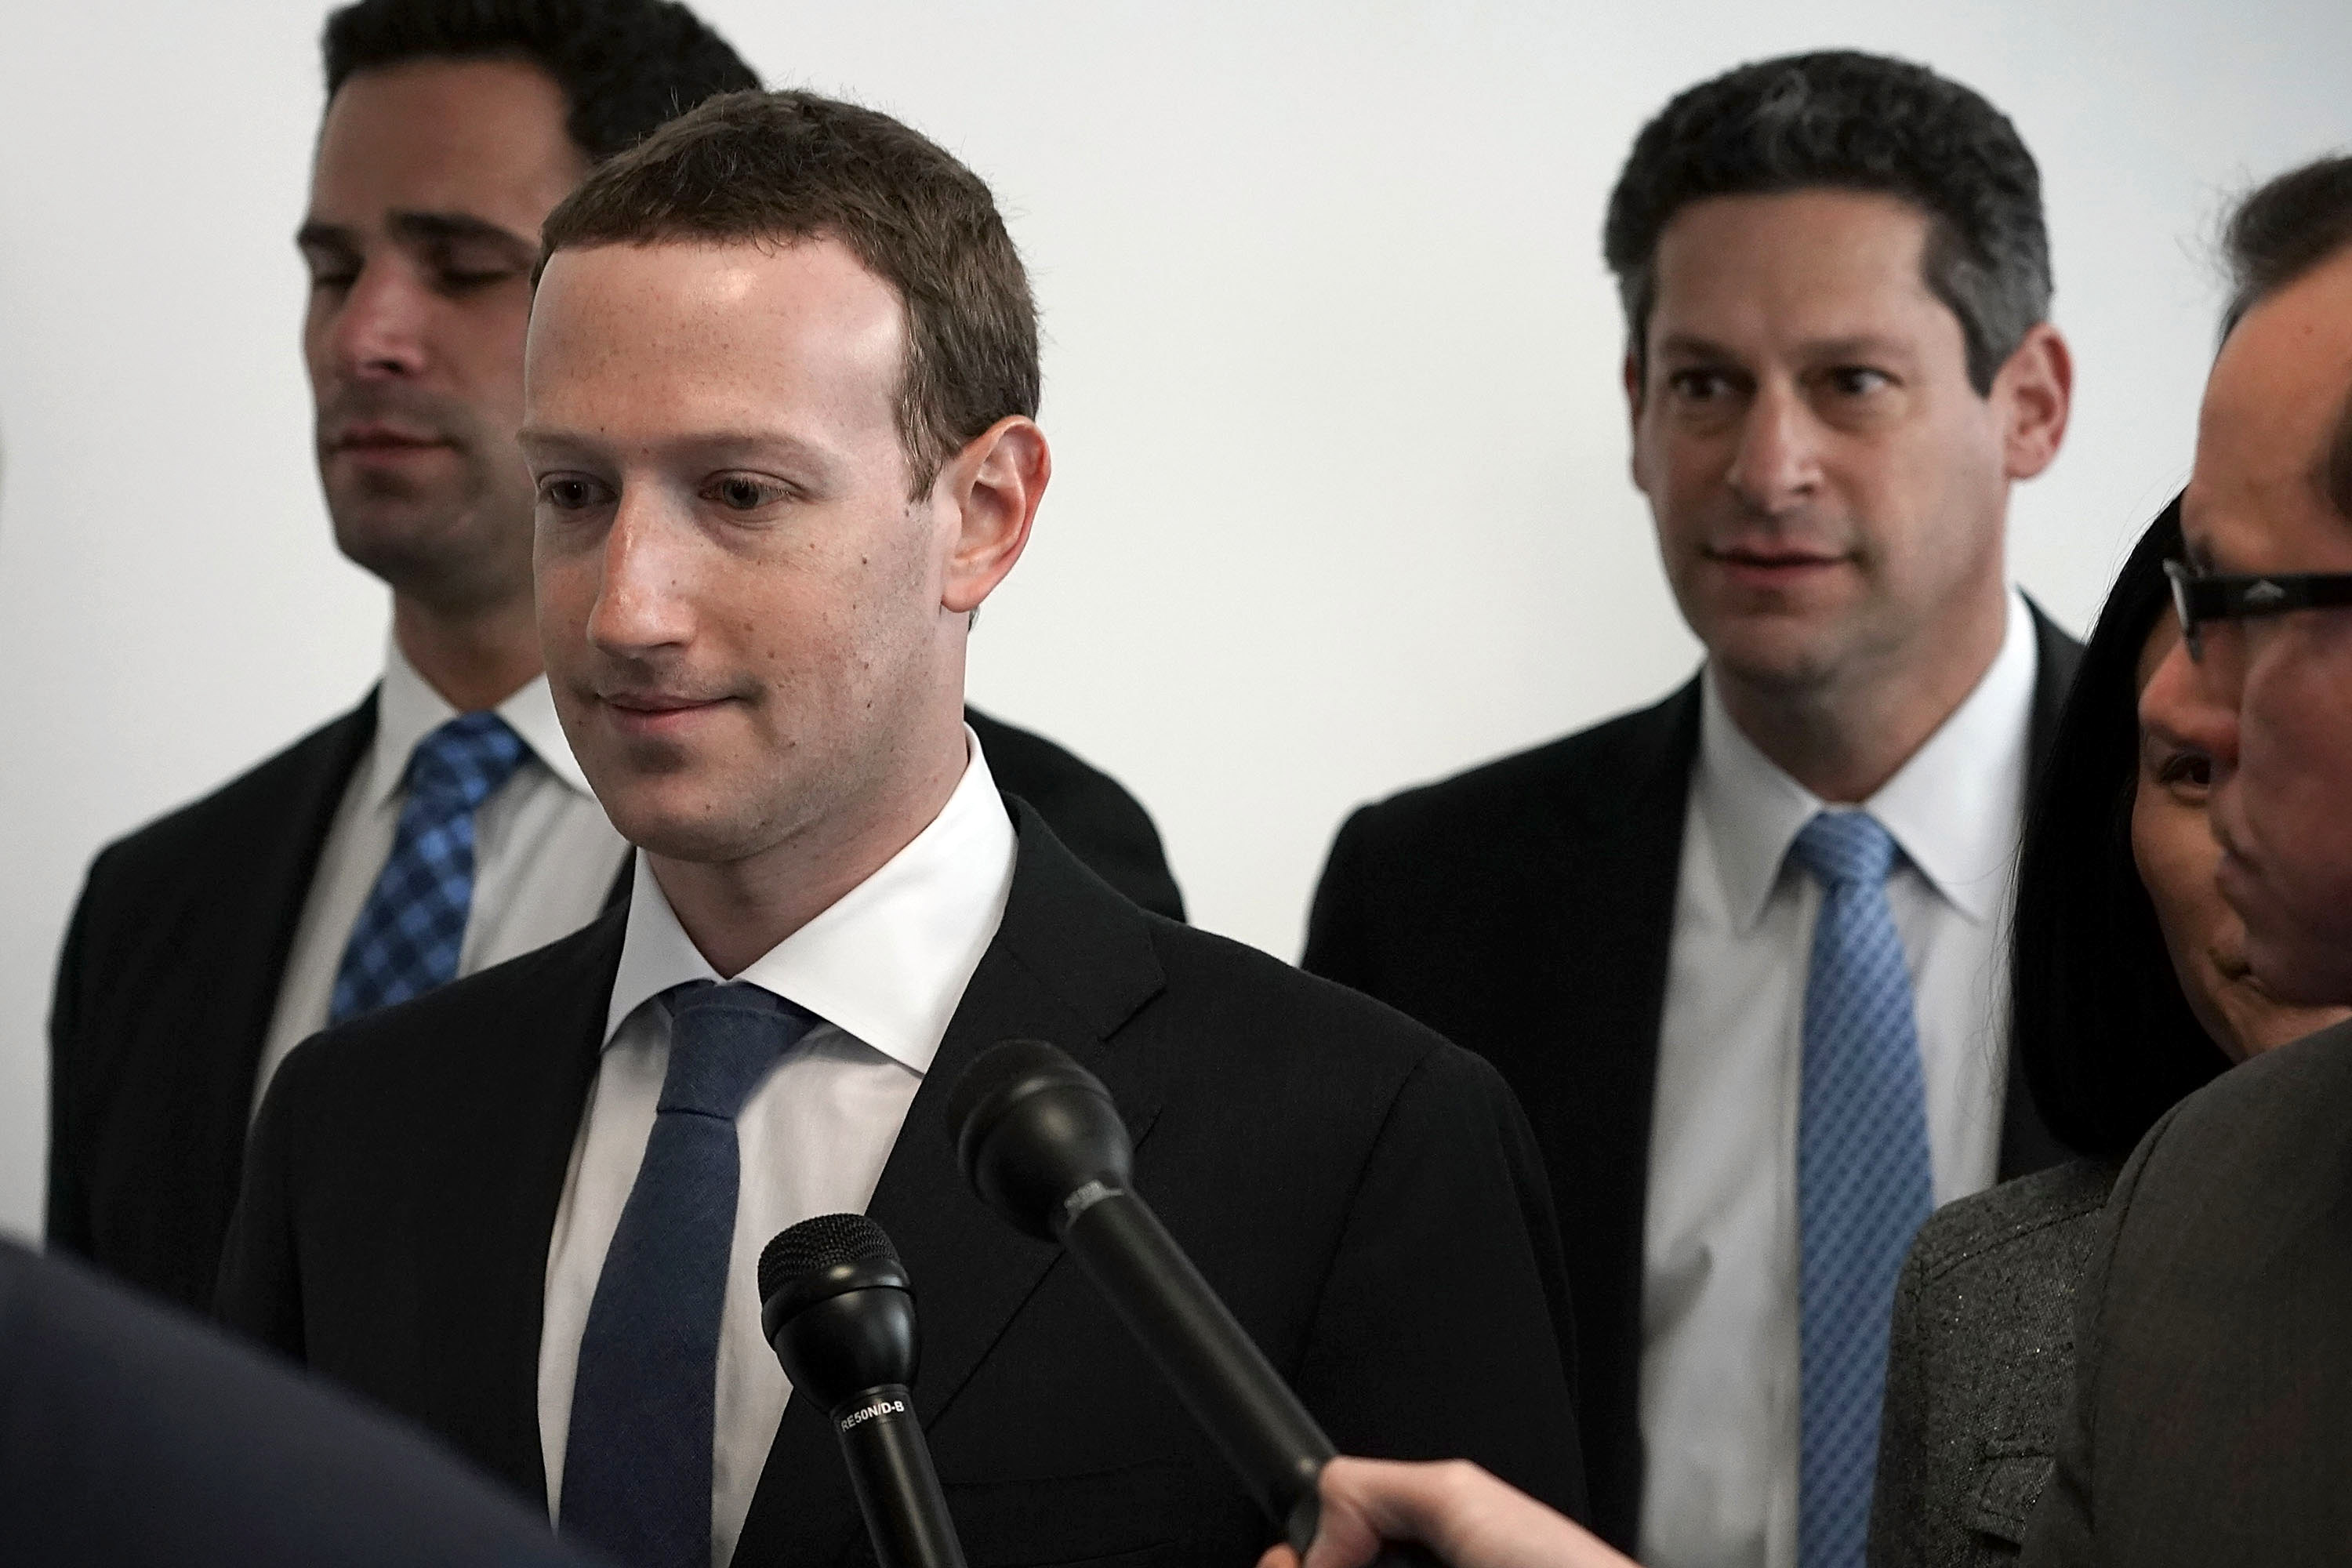 Facebook CEO Mark Zuckerberg (2 L) arrives at a meeting with U.S. Sen. Bill Nelson (D-FL), ranking member of the Senate Committee on Commerce, Science, and Transportation, April 9, 2018 on Capitol Hill in Washington, DC.